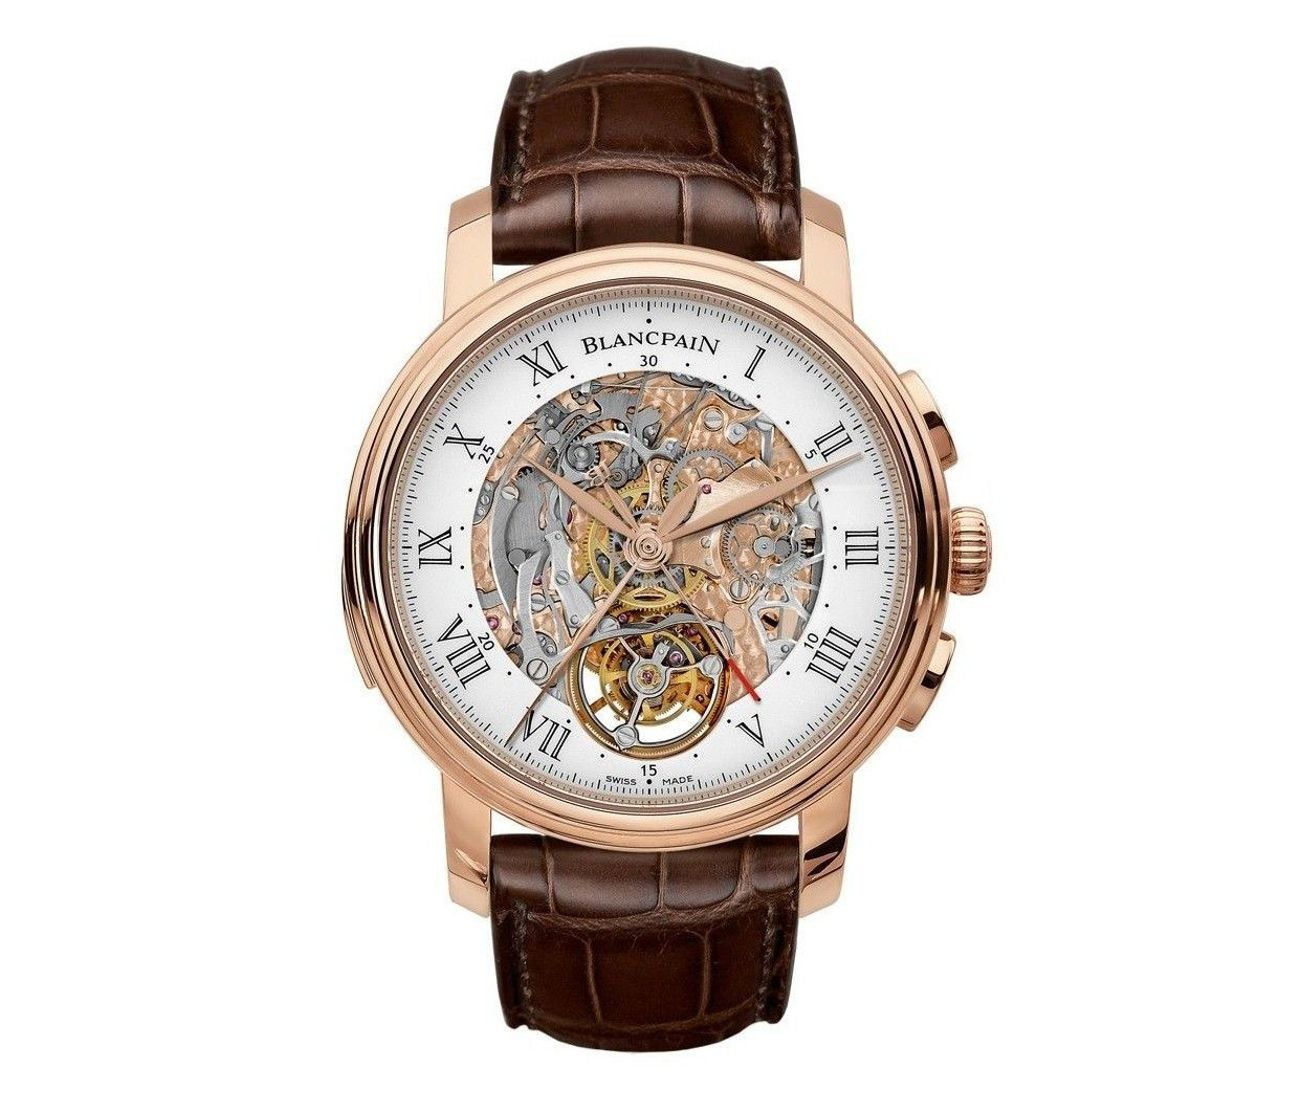 Carrousel Repetition Minutes Chronographe Flyback